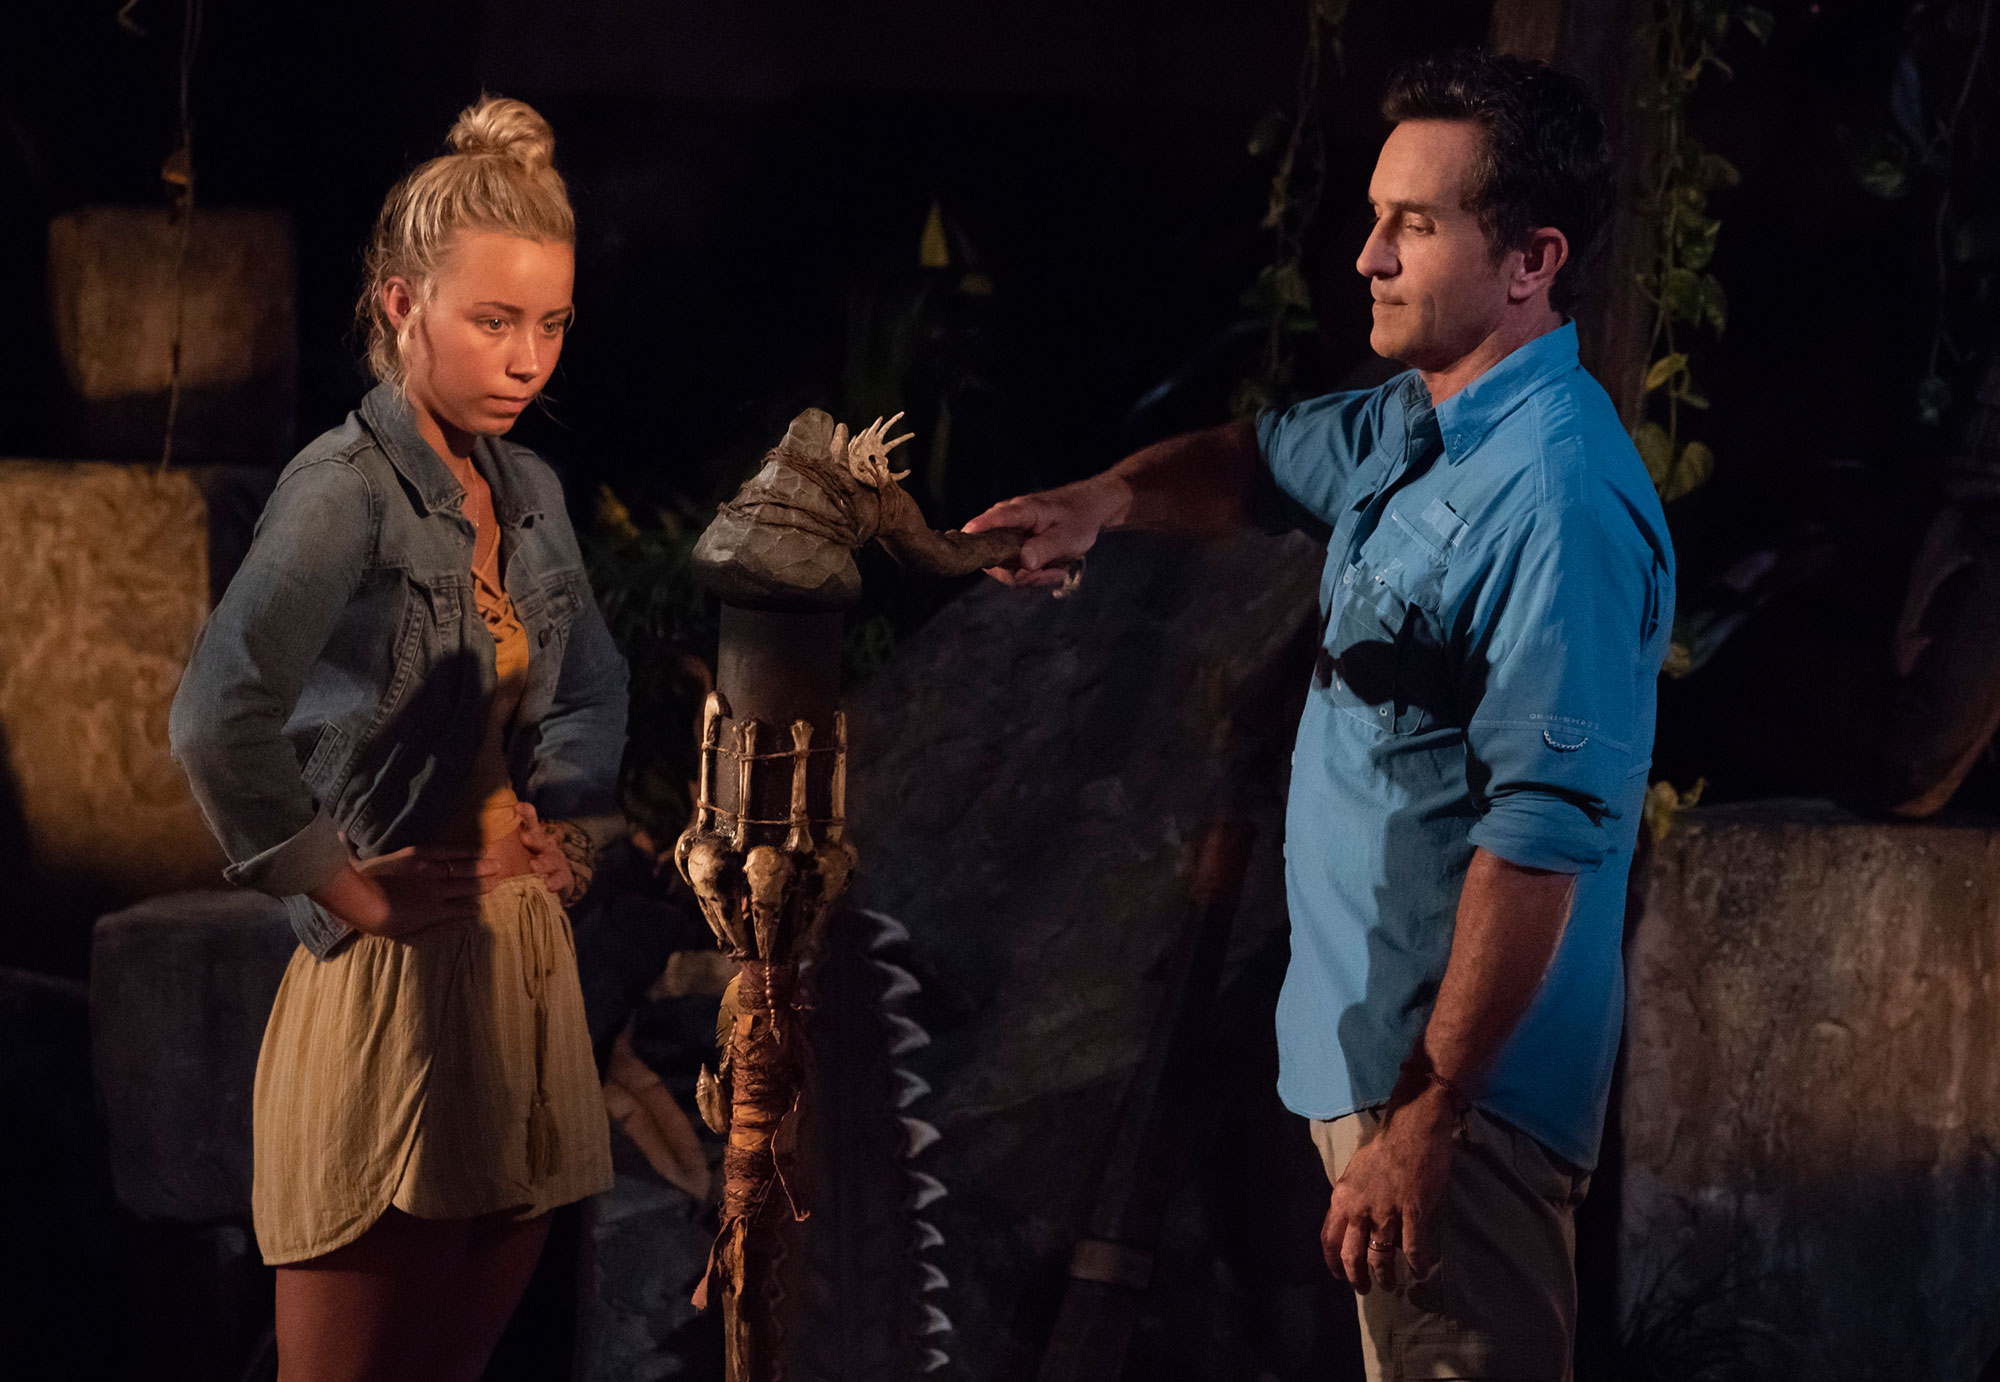 jessica peet - Jeff Probst extinguishes Jessica Peet's torch at tribal council on the second episode of 'Survivor: David vs. Goliath.